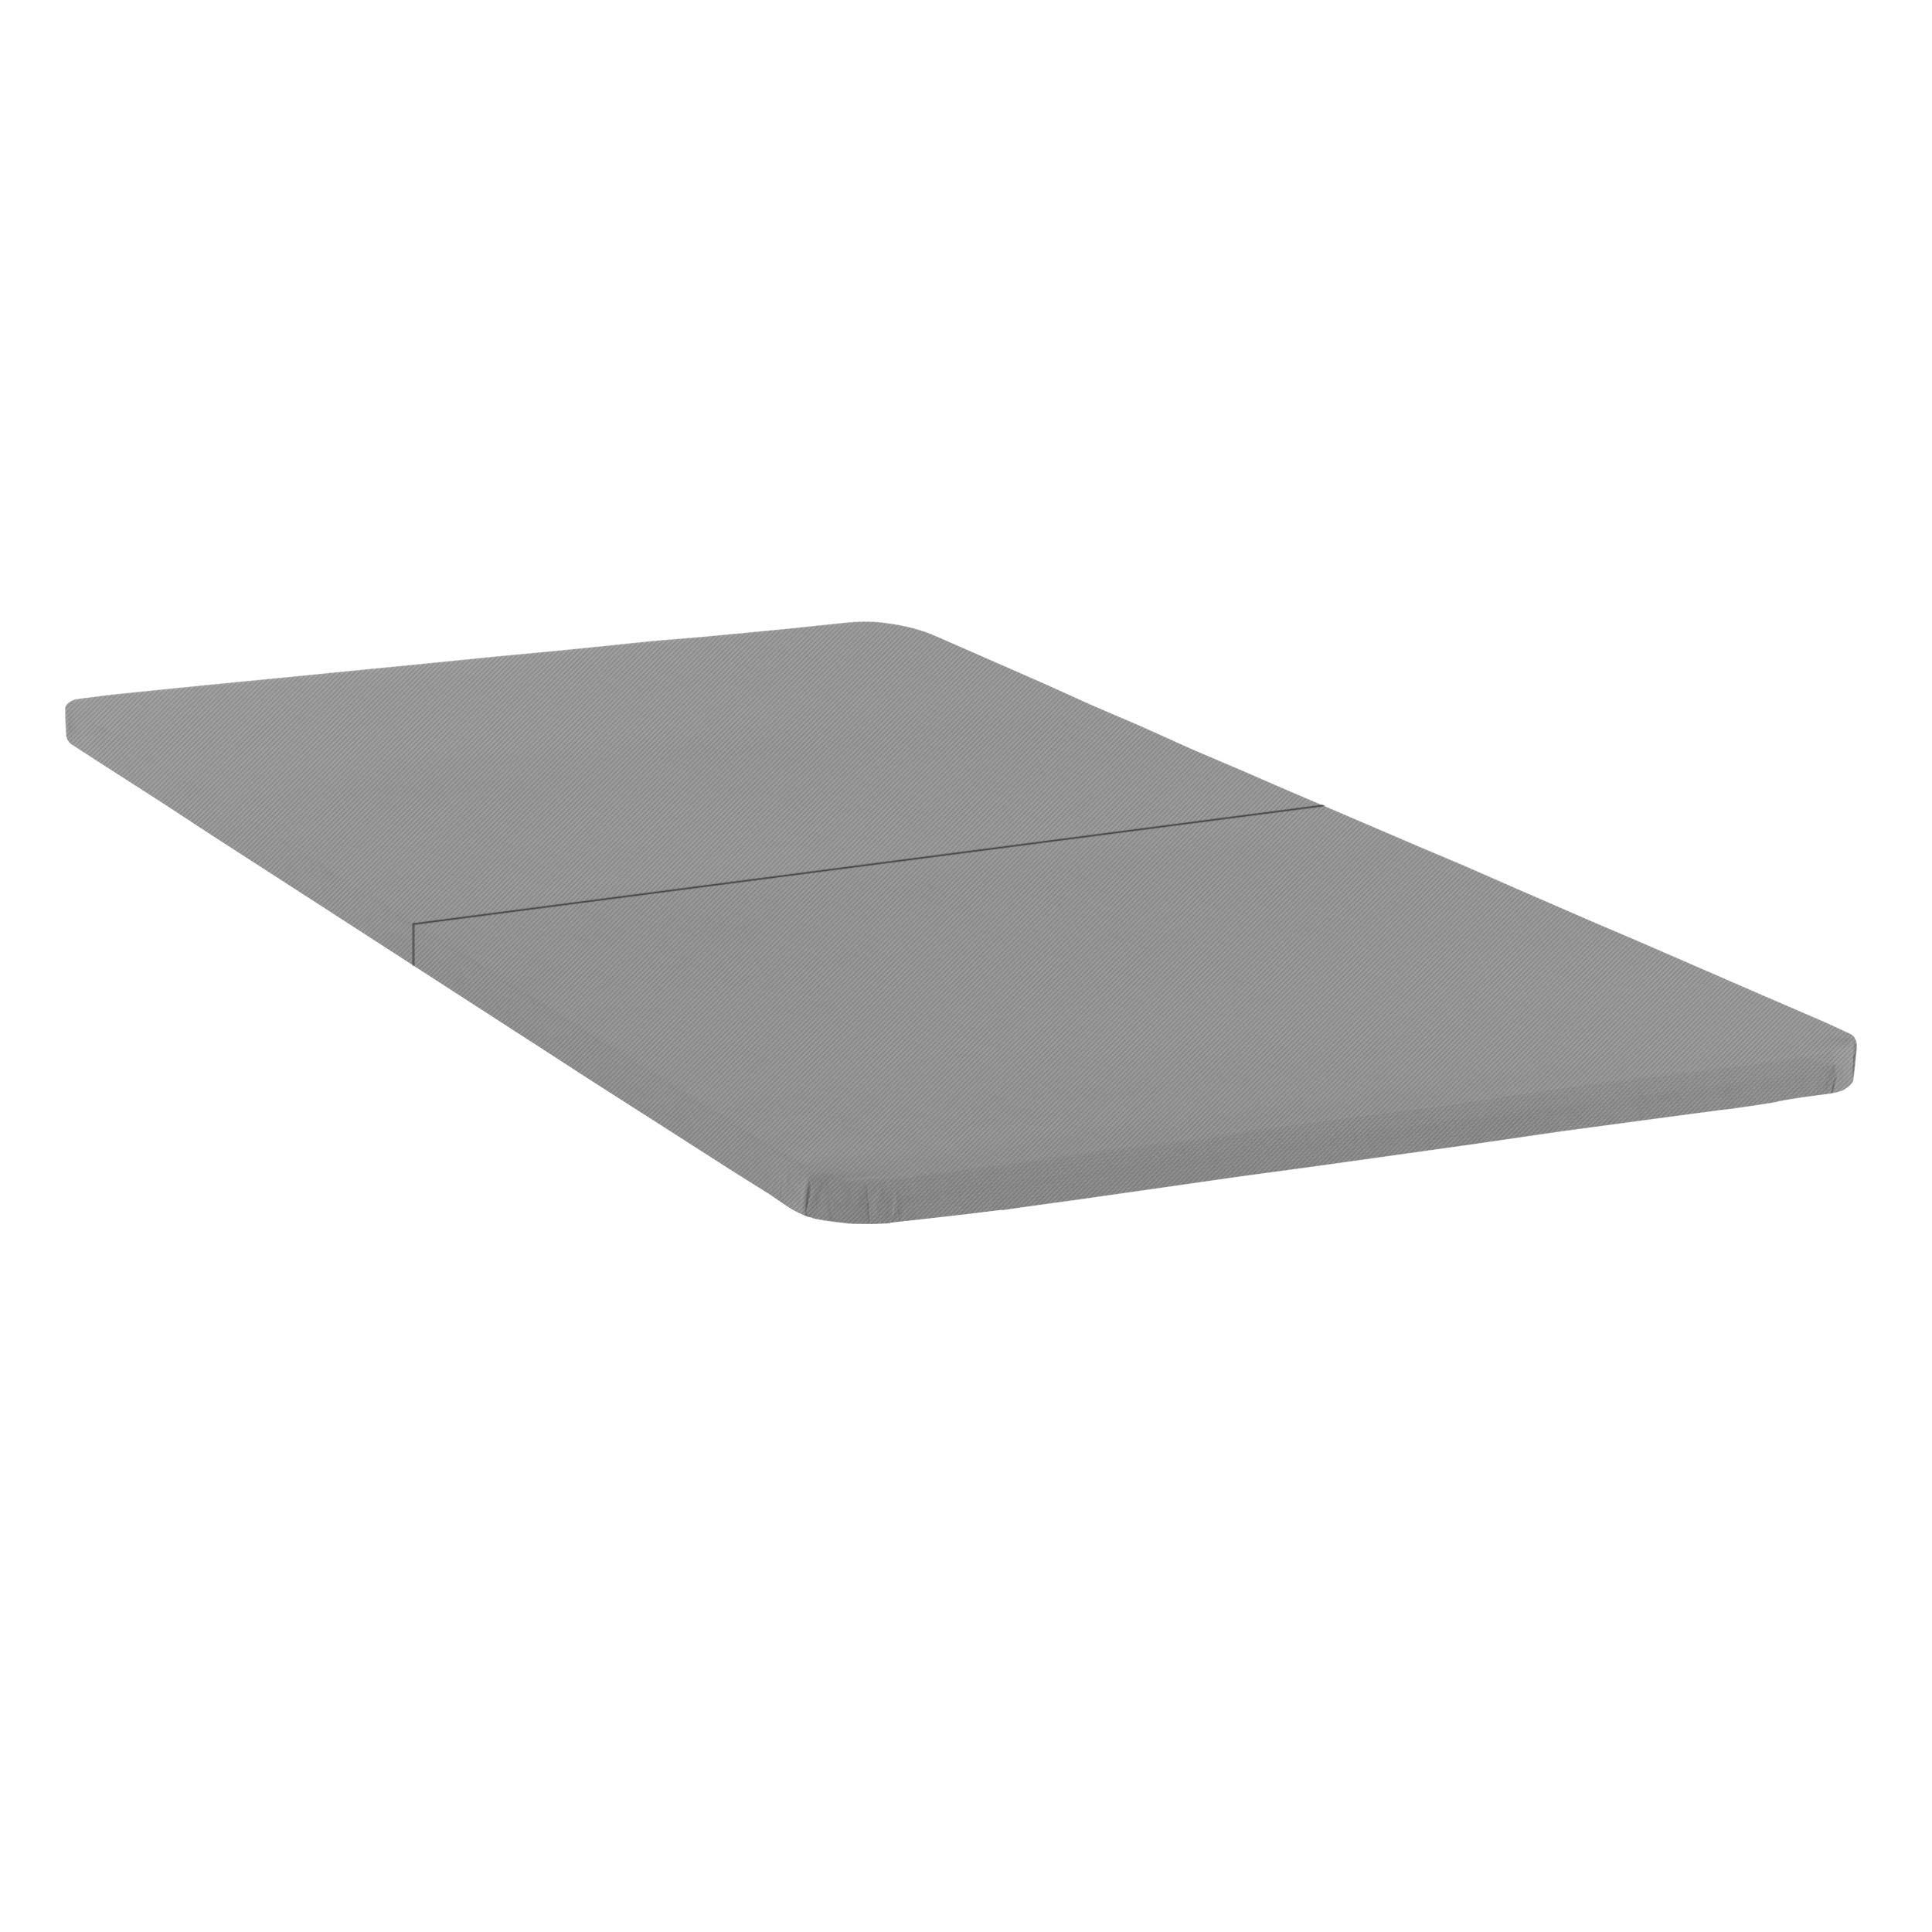 Spinal Solution 1.5-Inch Solid Wood Split Bunkie Board Mattress/Bed Support, Fits Standard Twin Grey